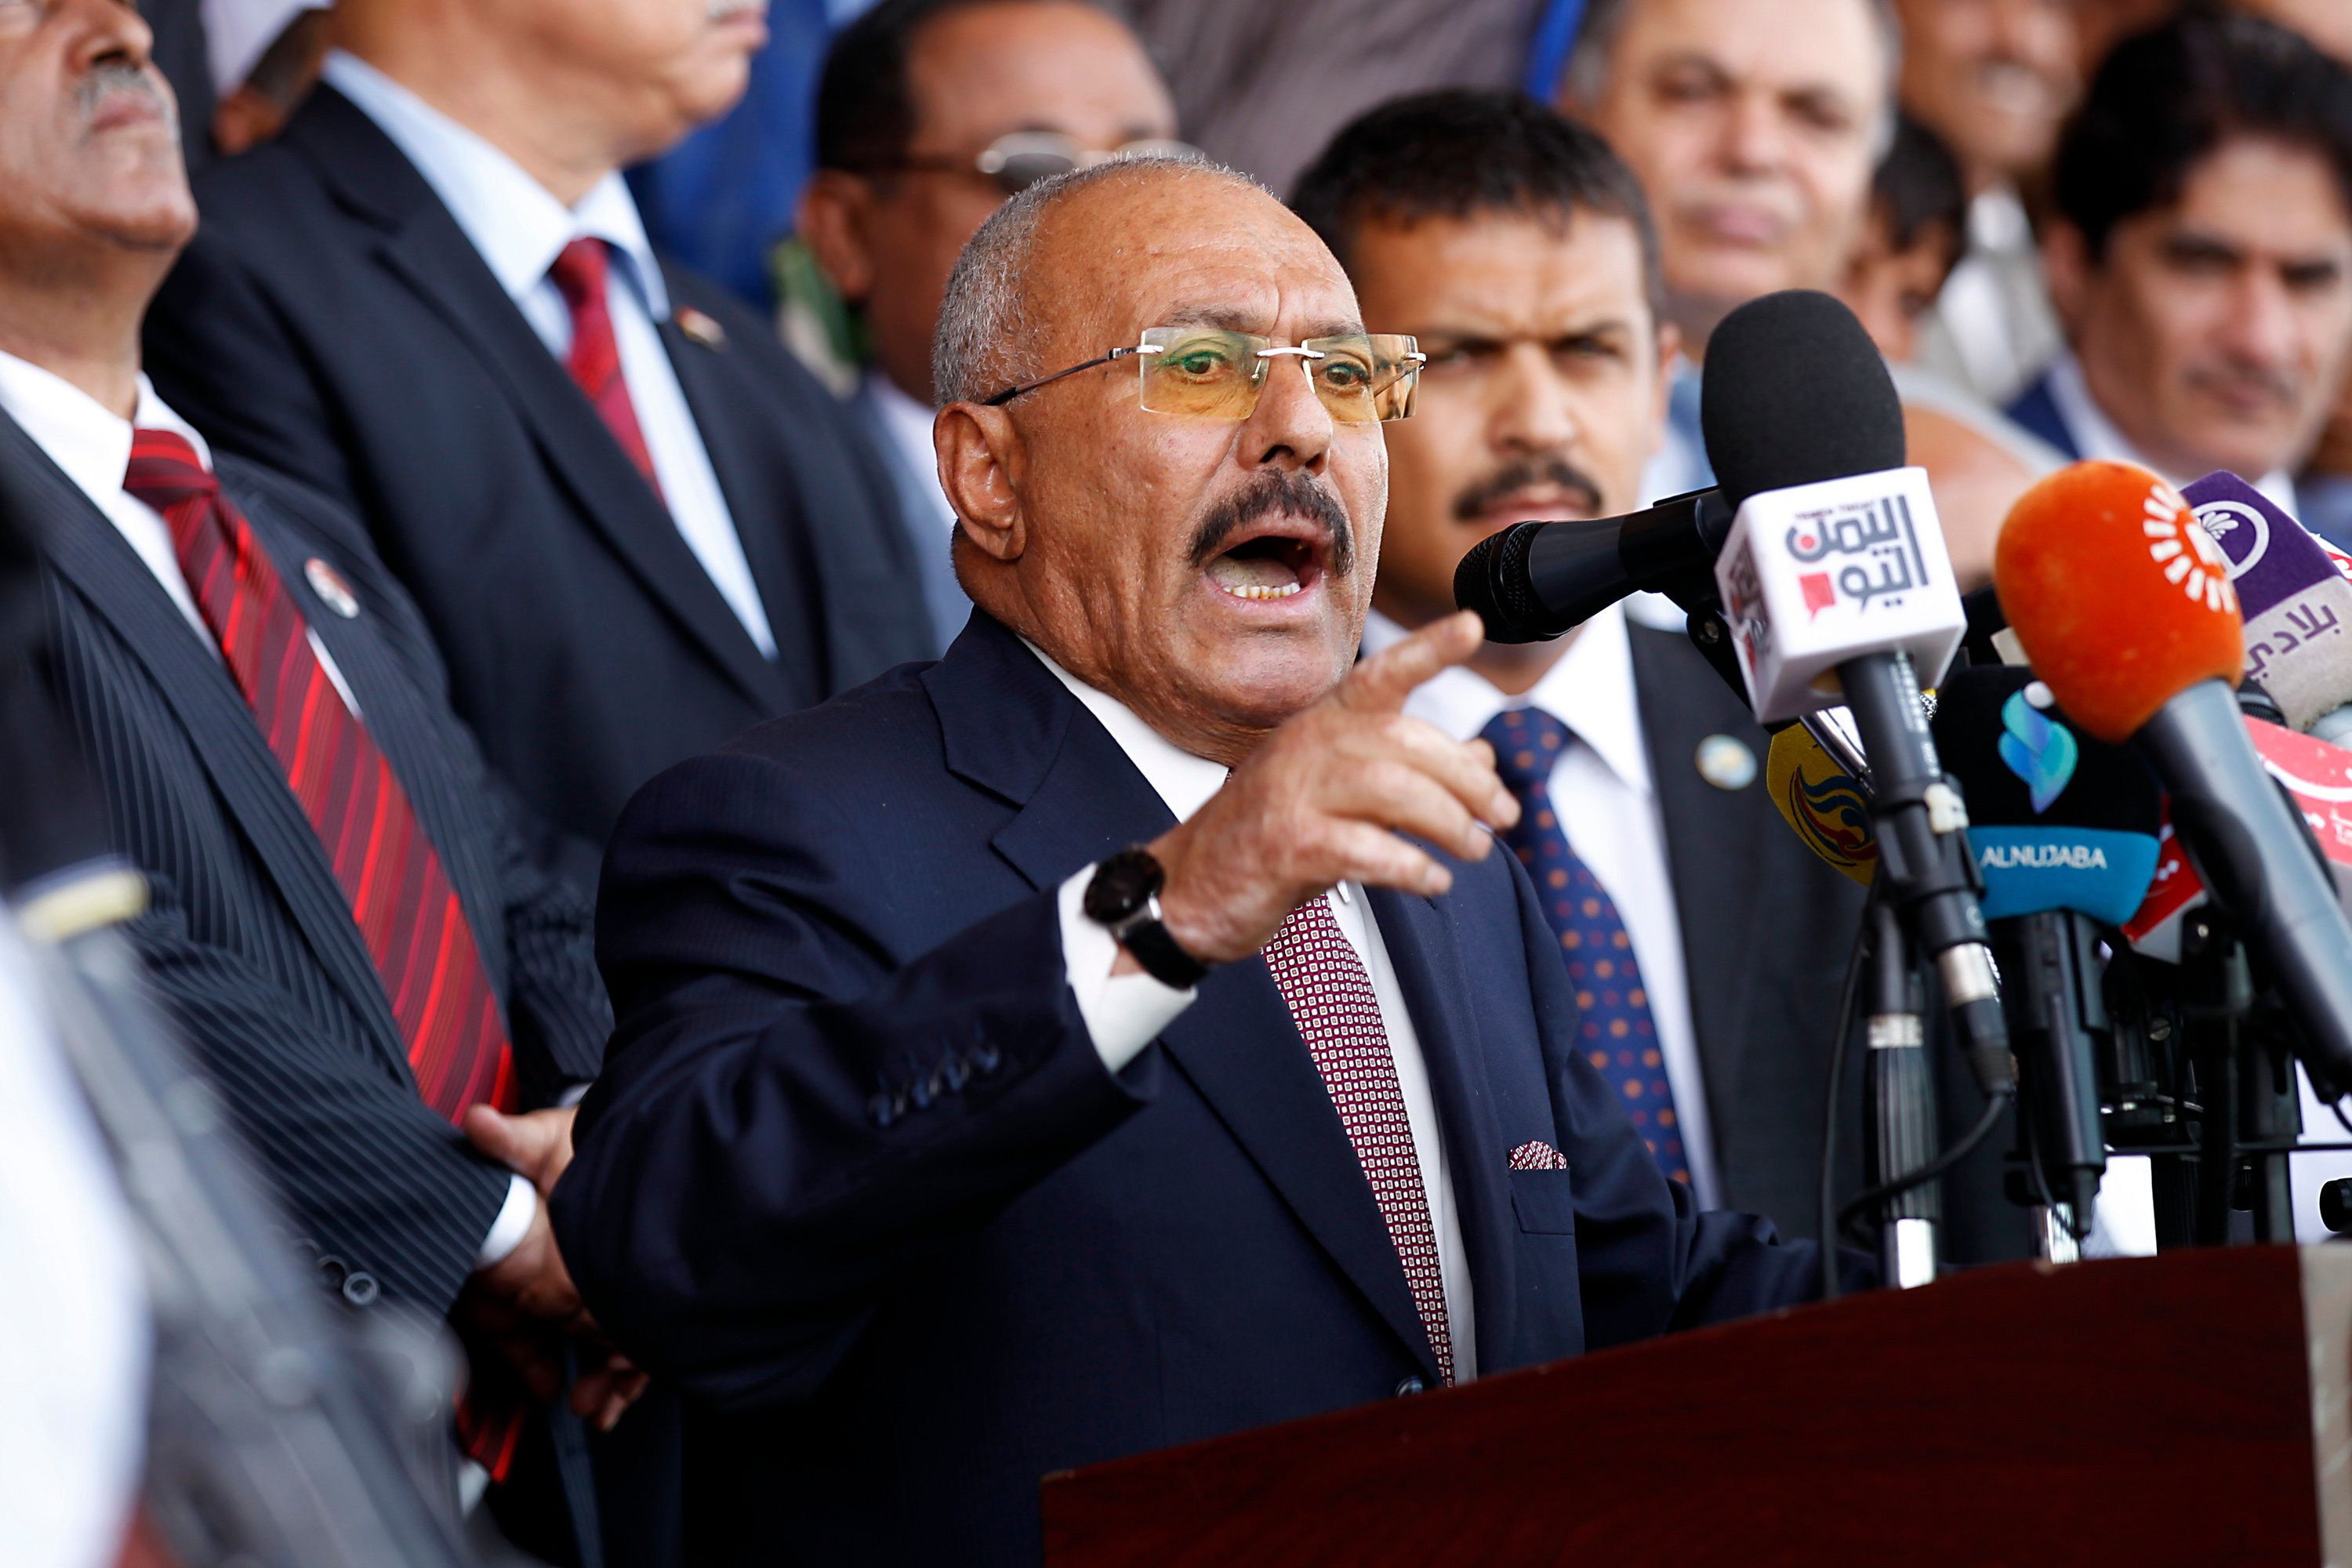 Ali Abdullah Saleh addresses supporters at a rally in